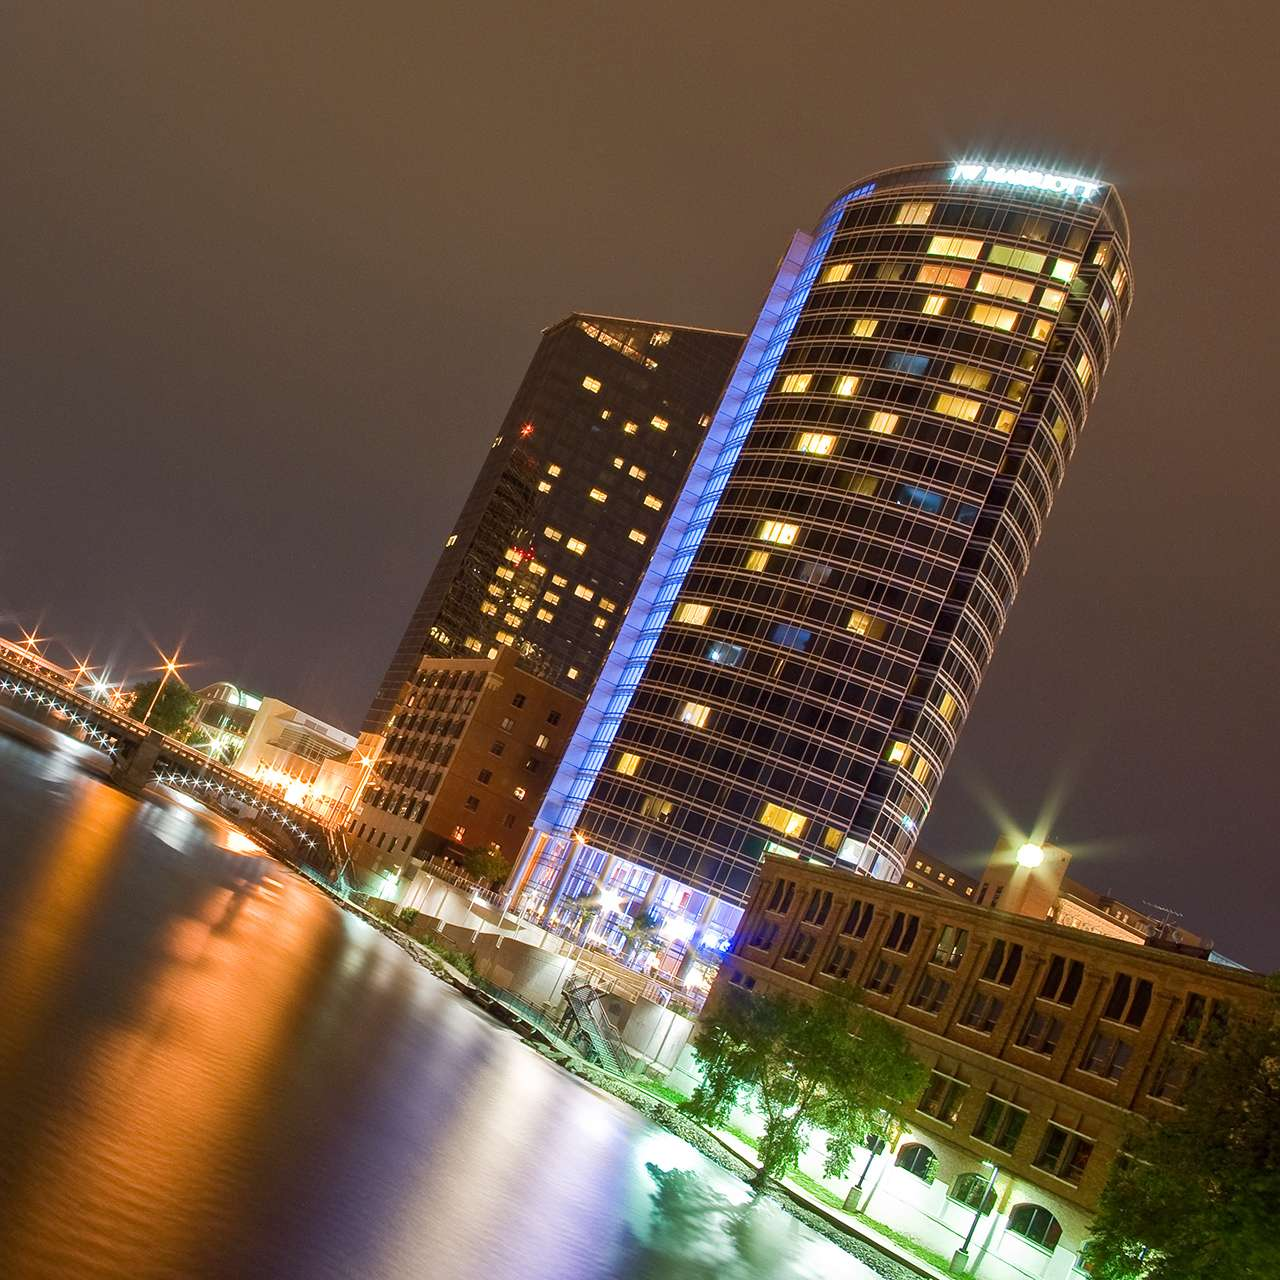 Rooms: The Amway Grand Plaza Review, An Experience We Will Never